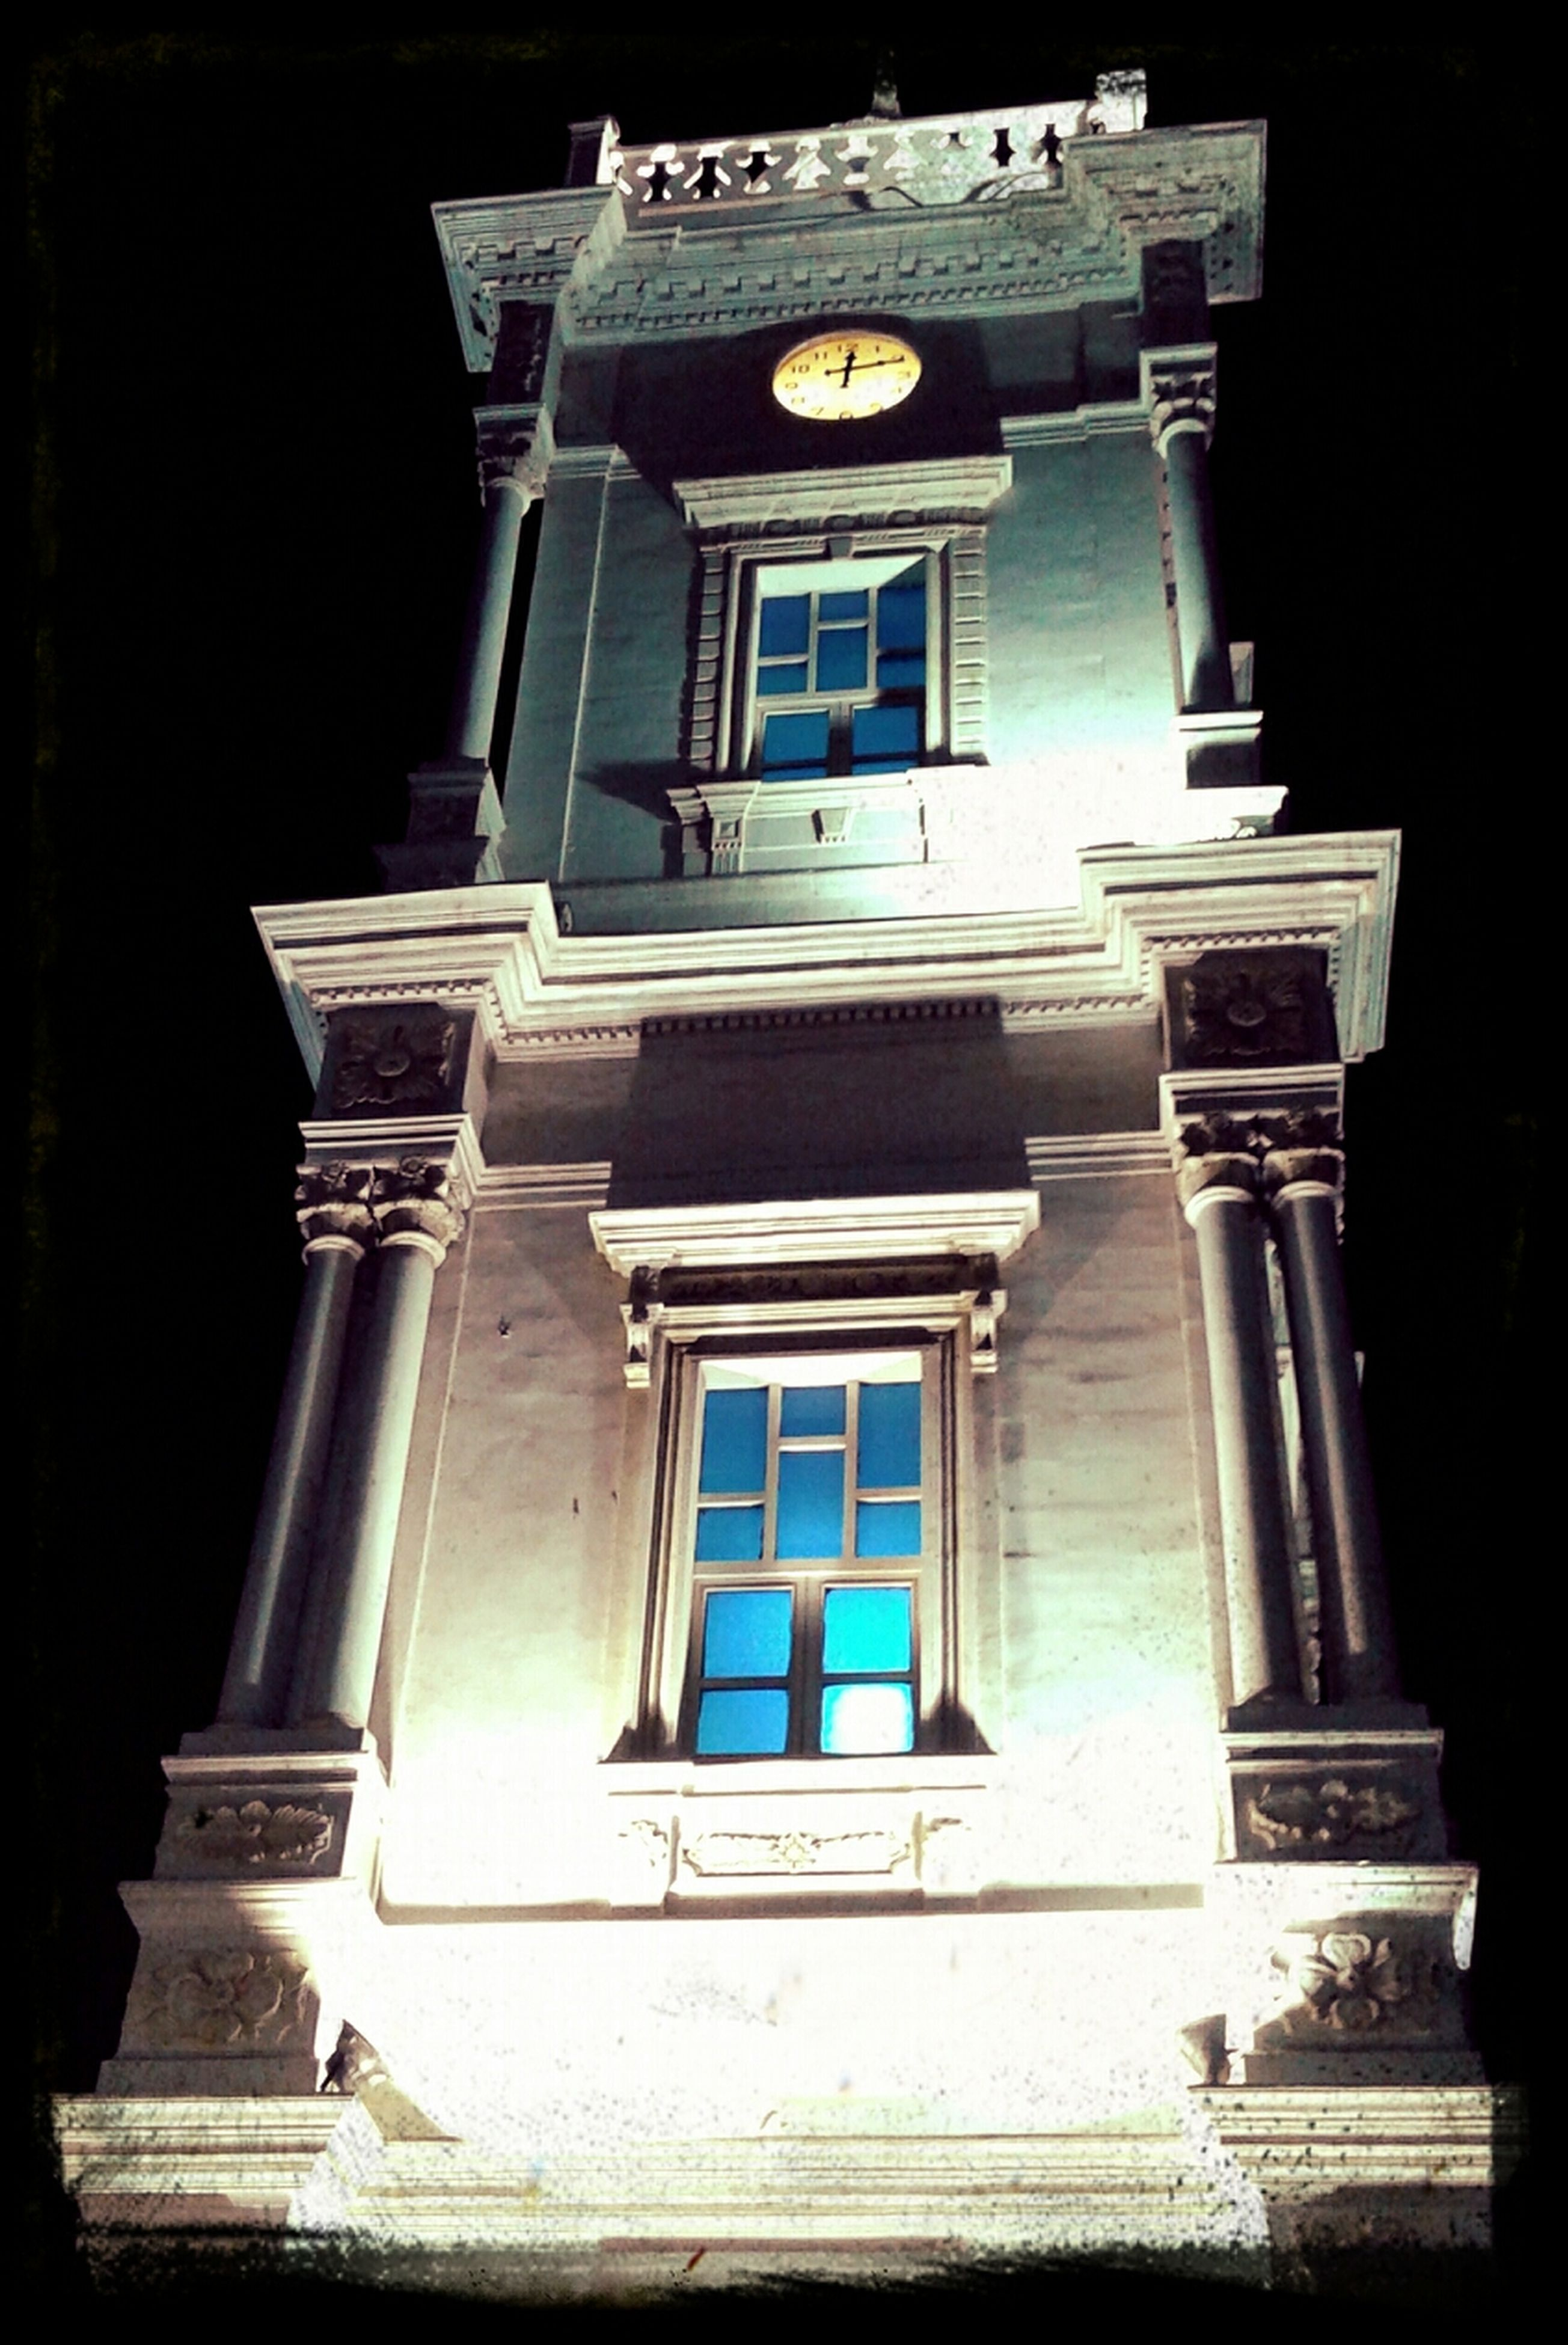 architecture, built structure, building exterior, low angle view, window, religion, church, place of worship, facade, spirituality, entrance, night, building, history, door, arch, no people, auto post production filter